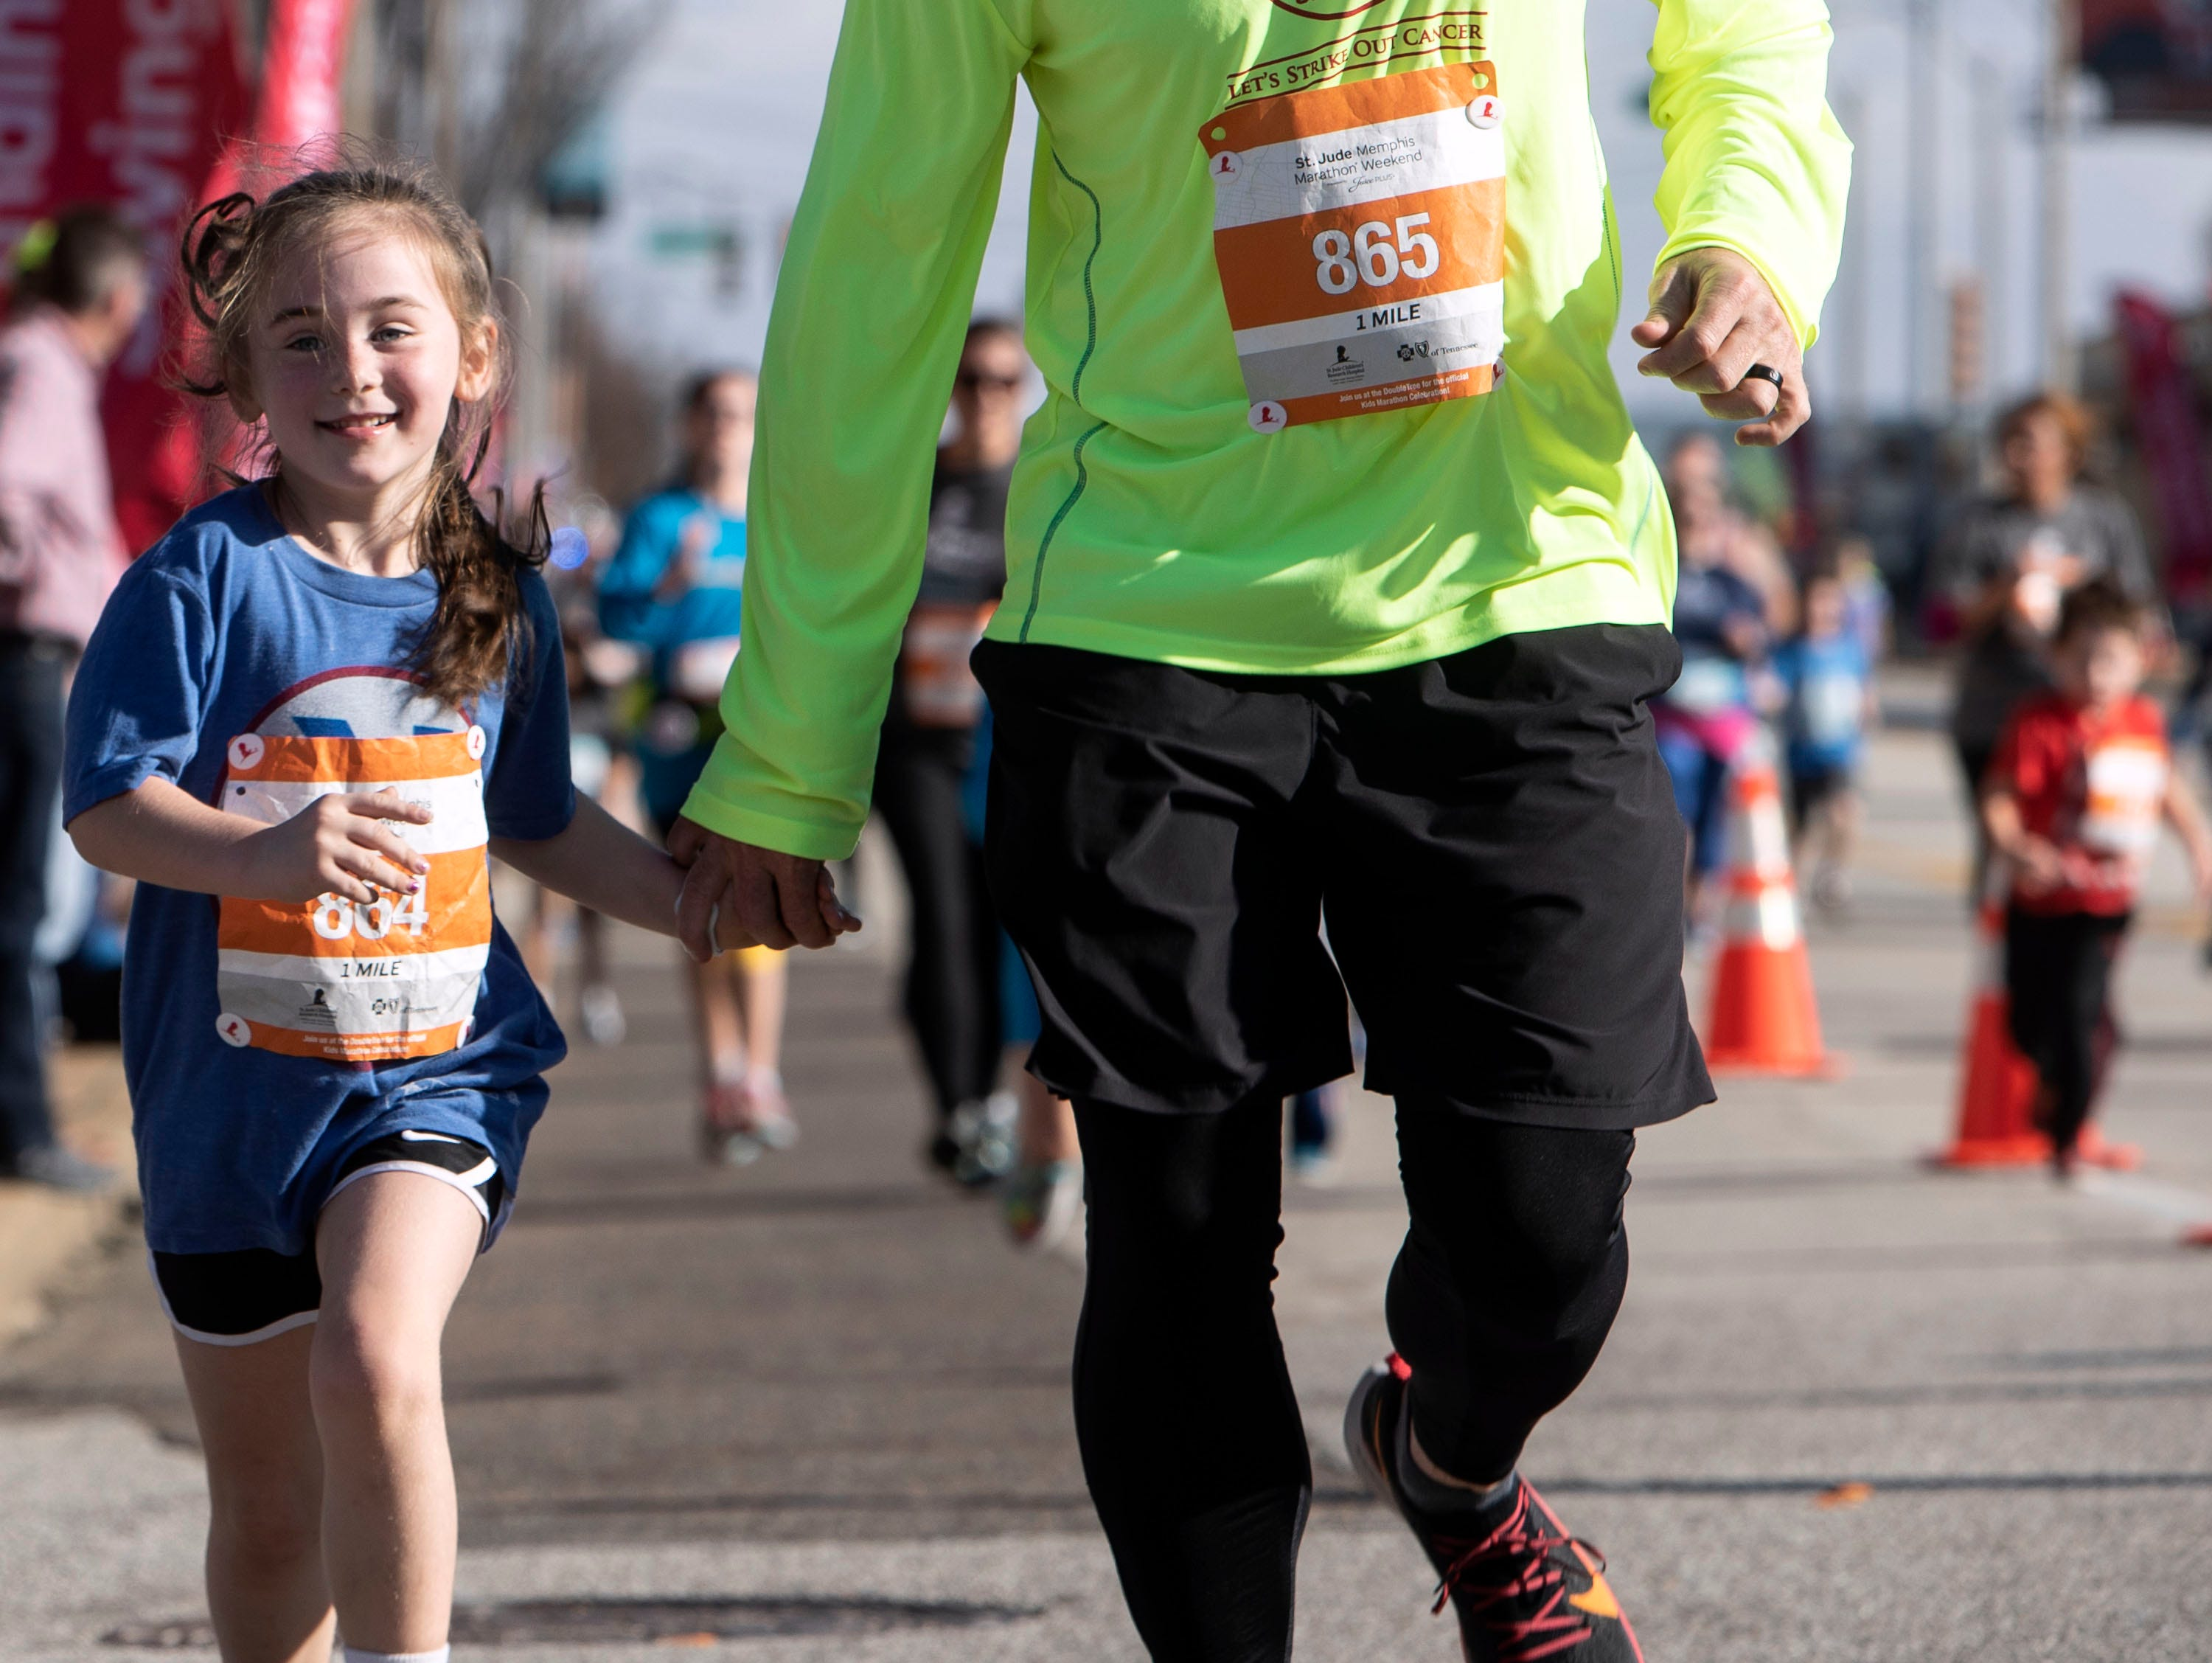 Young runners make their way downtown to the finish line  during the St. Jude Memphis Marathon on Saturday, Dec. 1, 2018.